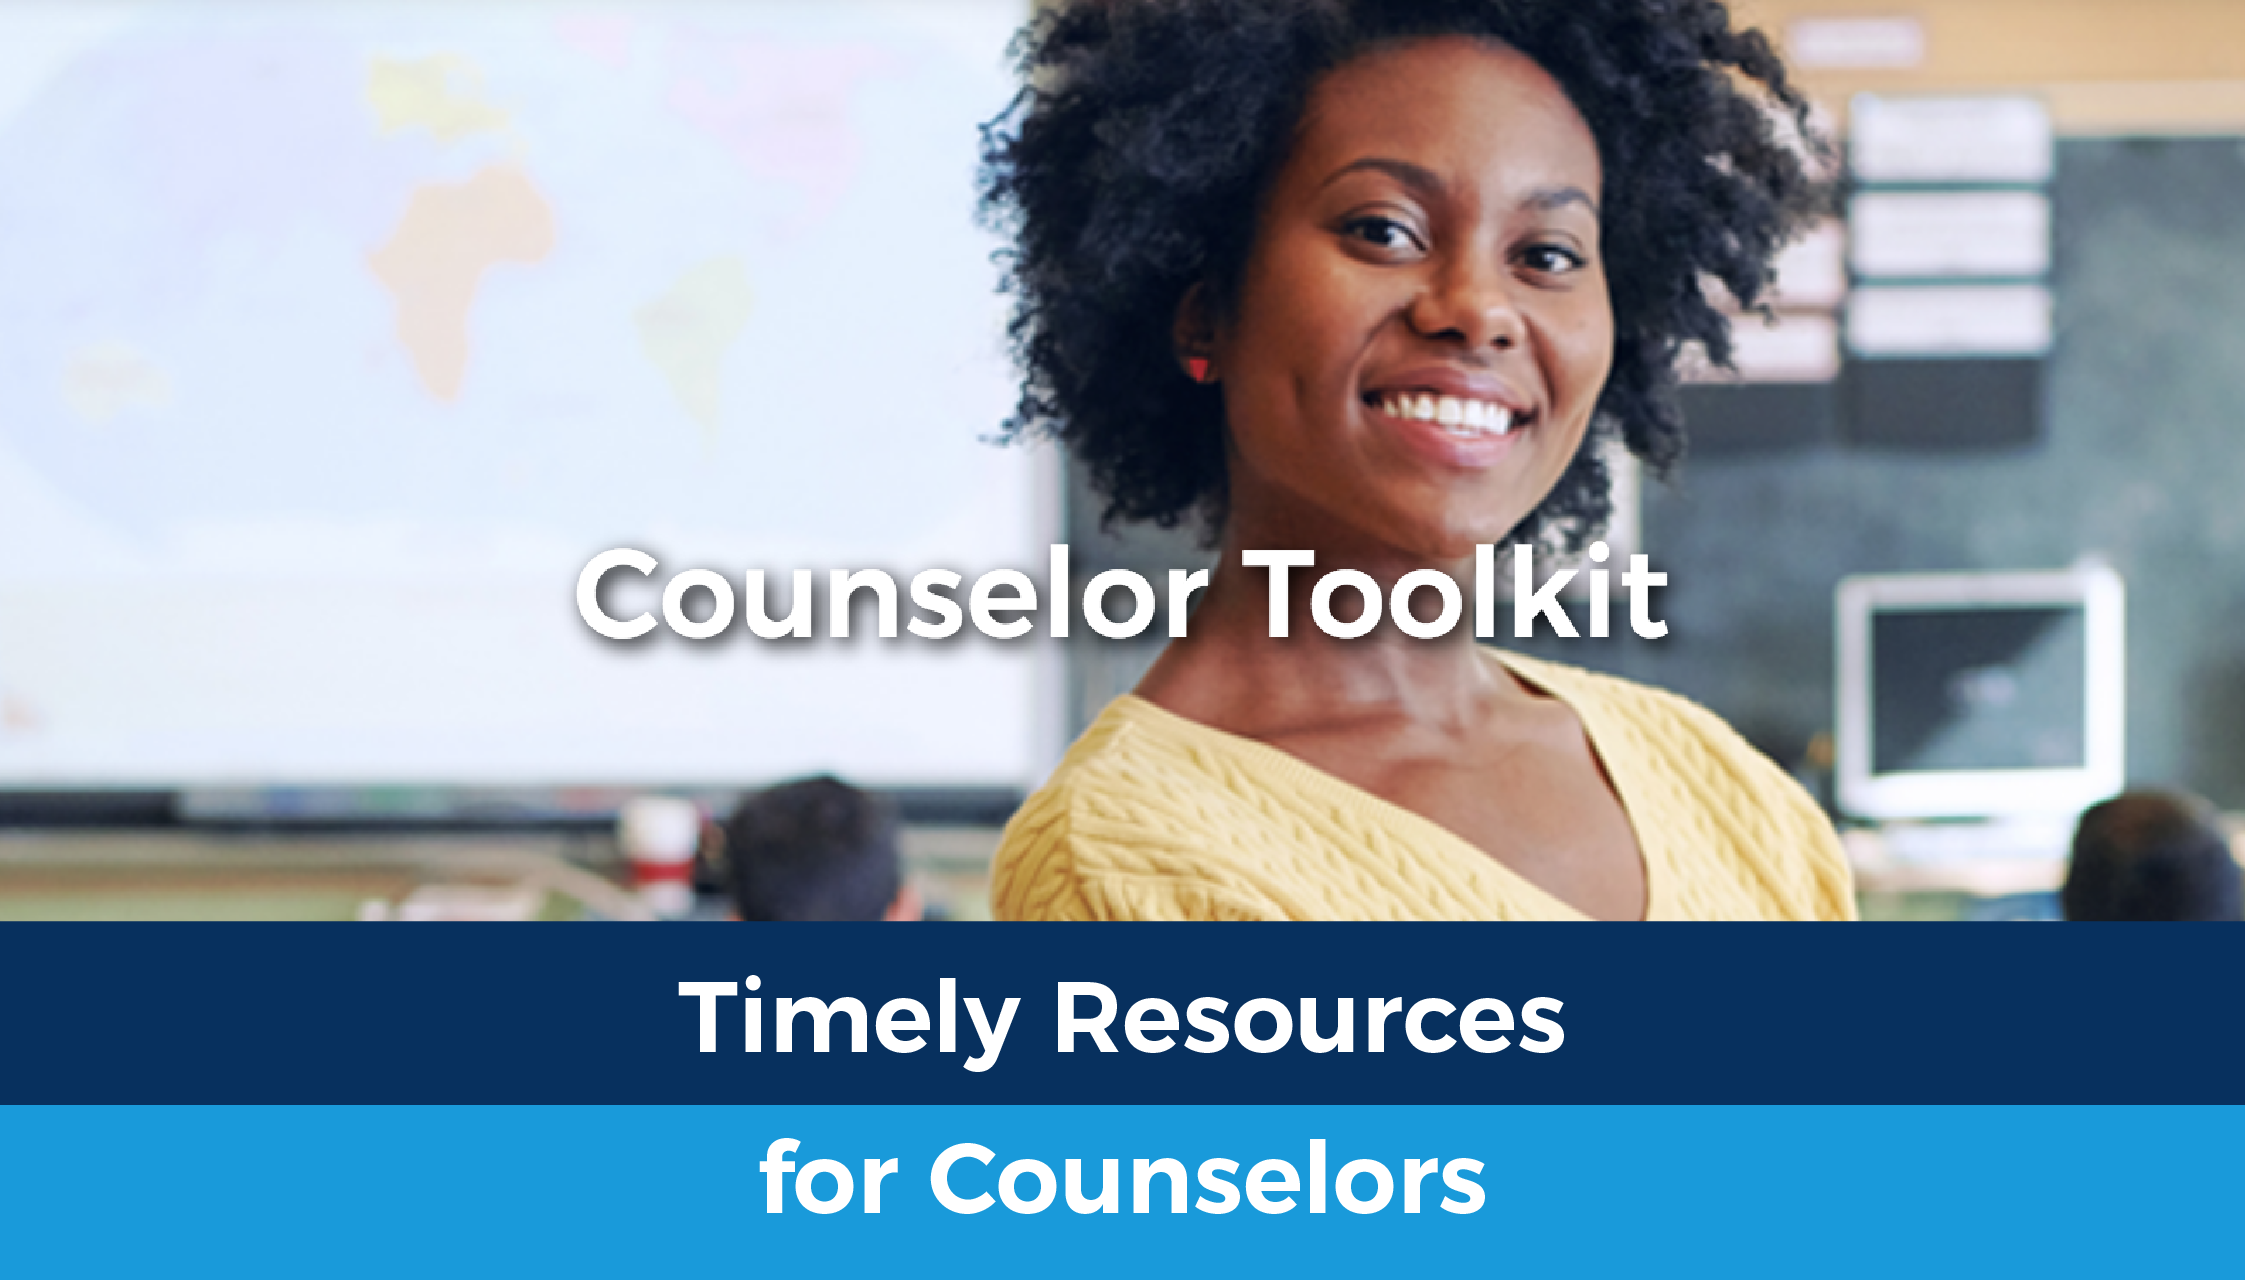 Counselor Toolkit: Timely Resources for Counselors